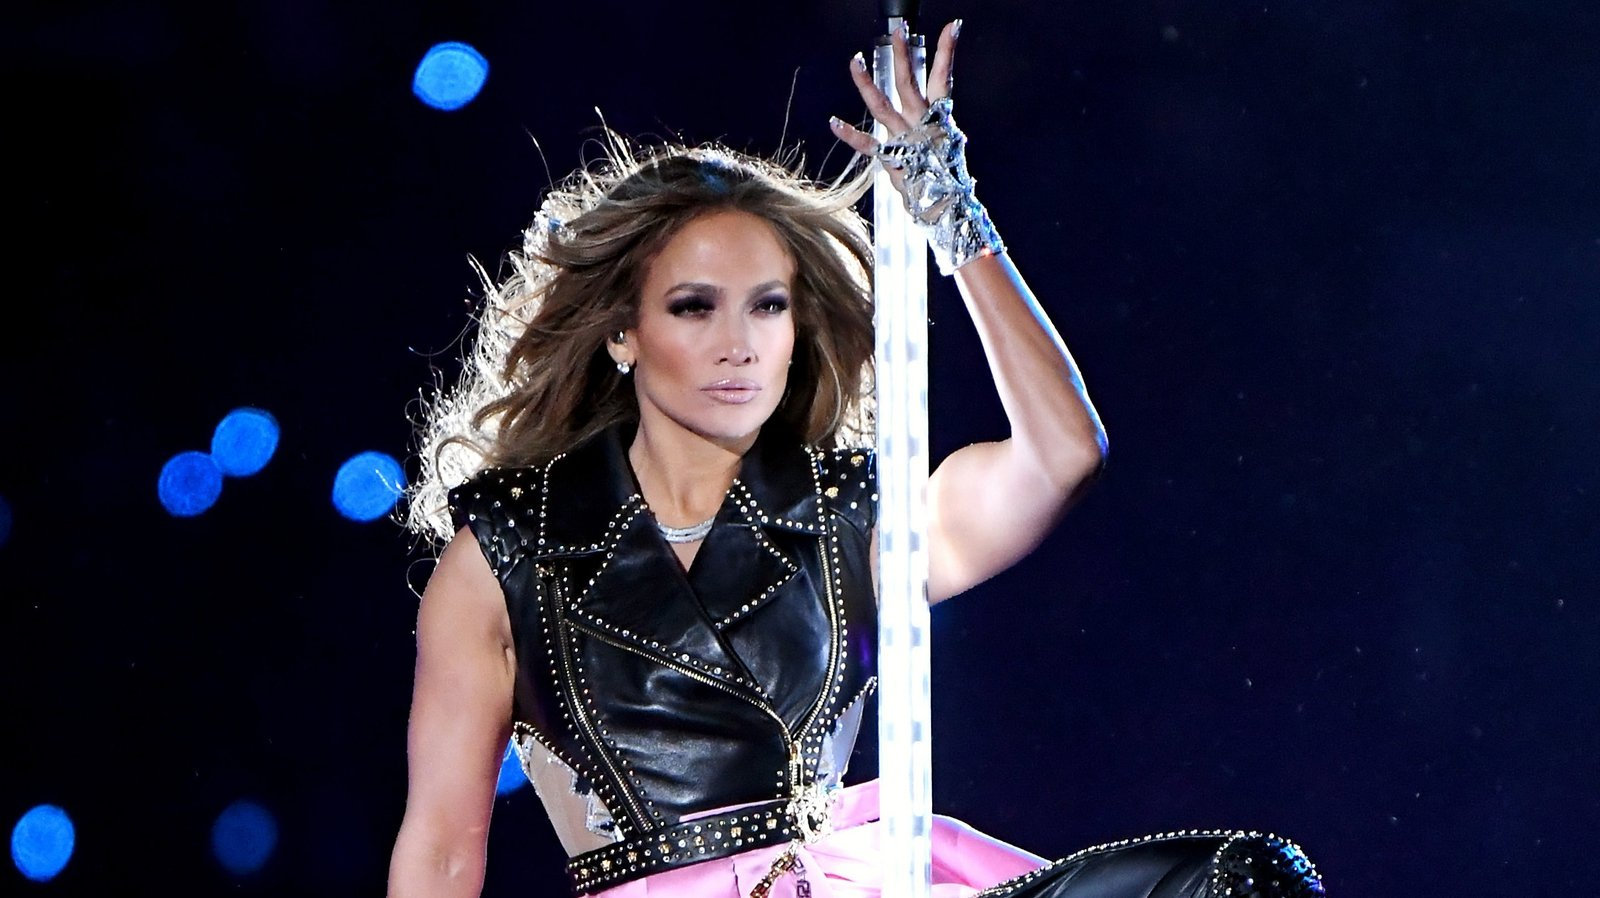 Beyonce Jlo Shakira Steal The Show At Super Bowl 2020